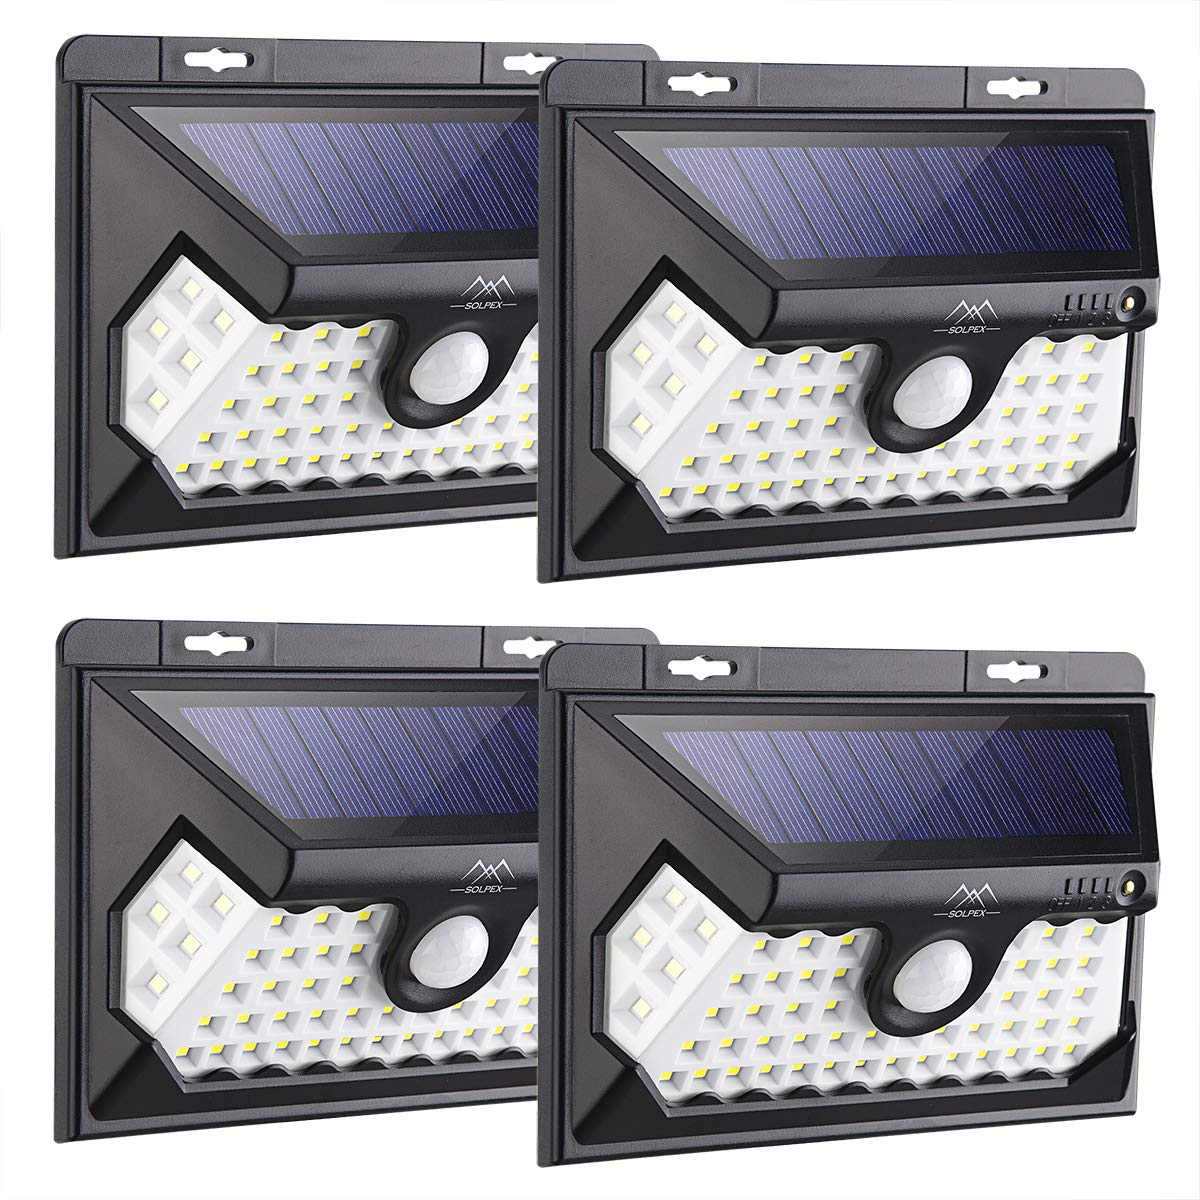 Solpex 58 LED Solar Lights Outdoor, Waterproof Solar Motion Sensor Lights, 270 Wide Angle, Wireless Easy-to-Install Security Lights for Front Door, Yard, Garage, Deck-4 Pack